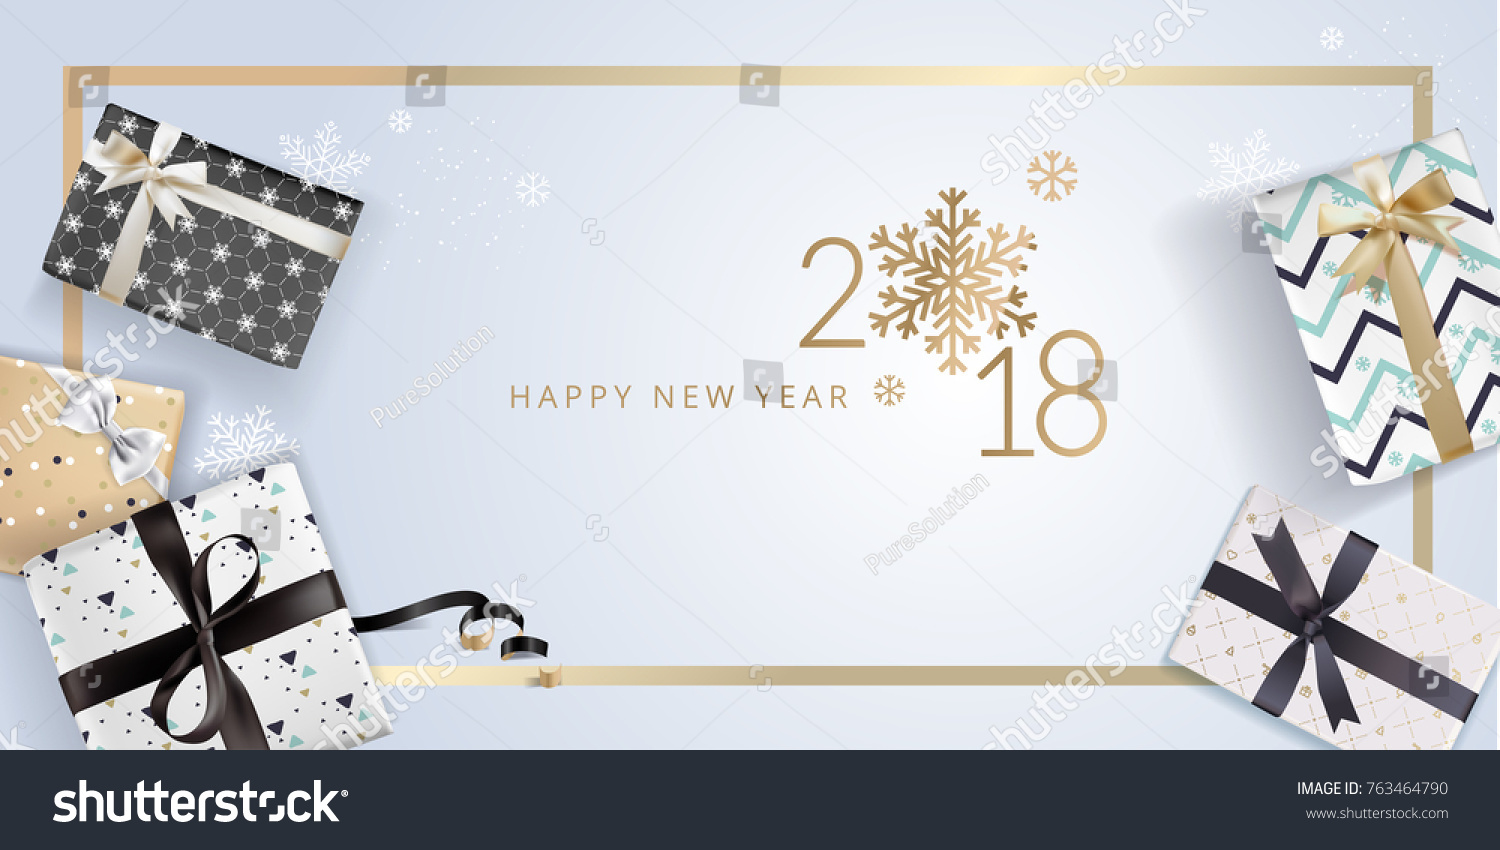 Happy New Years Greeting Cards Gallery - Greeting Card Examples